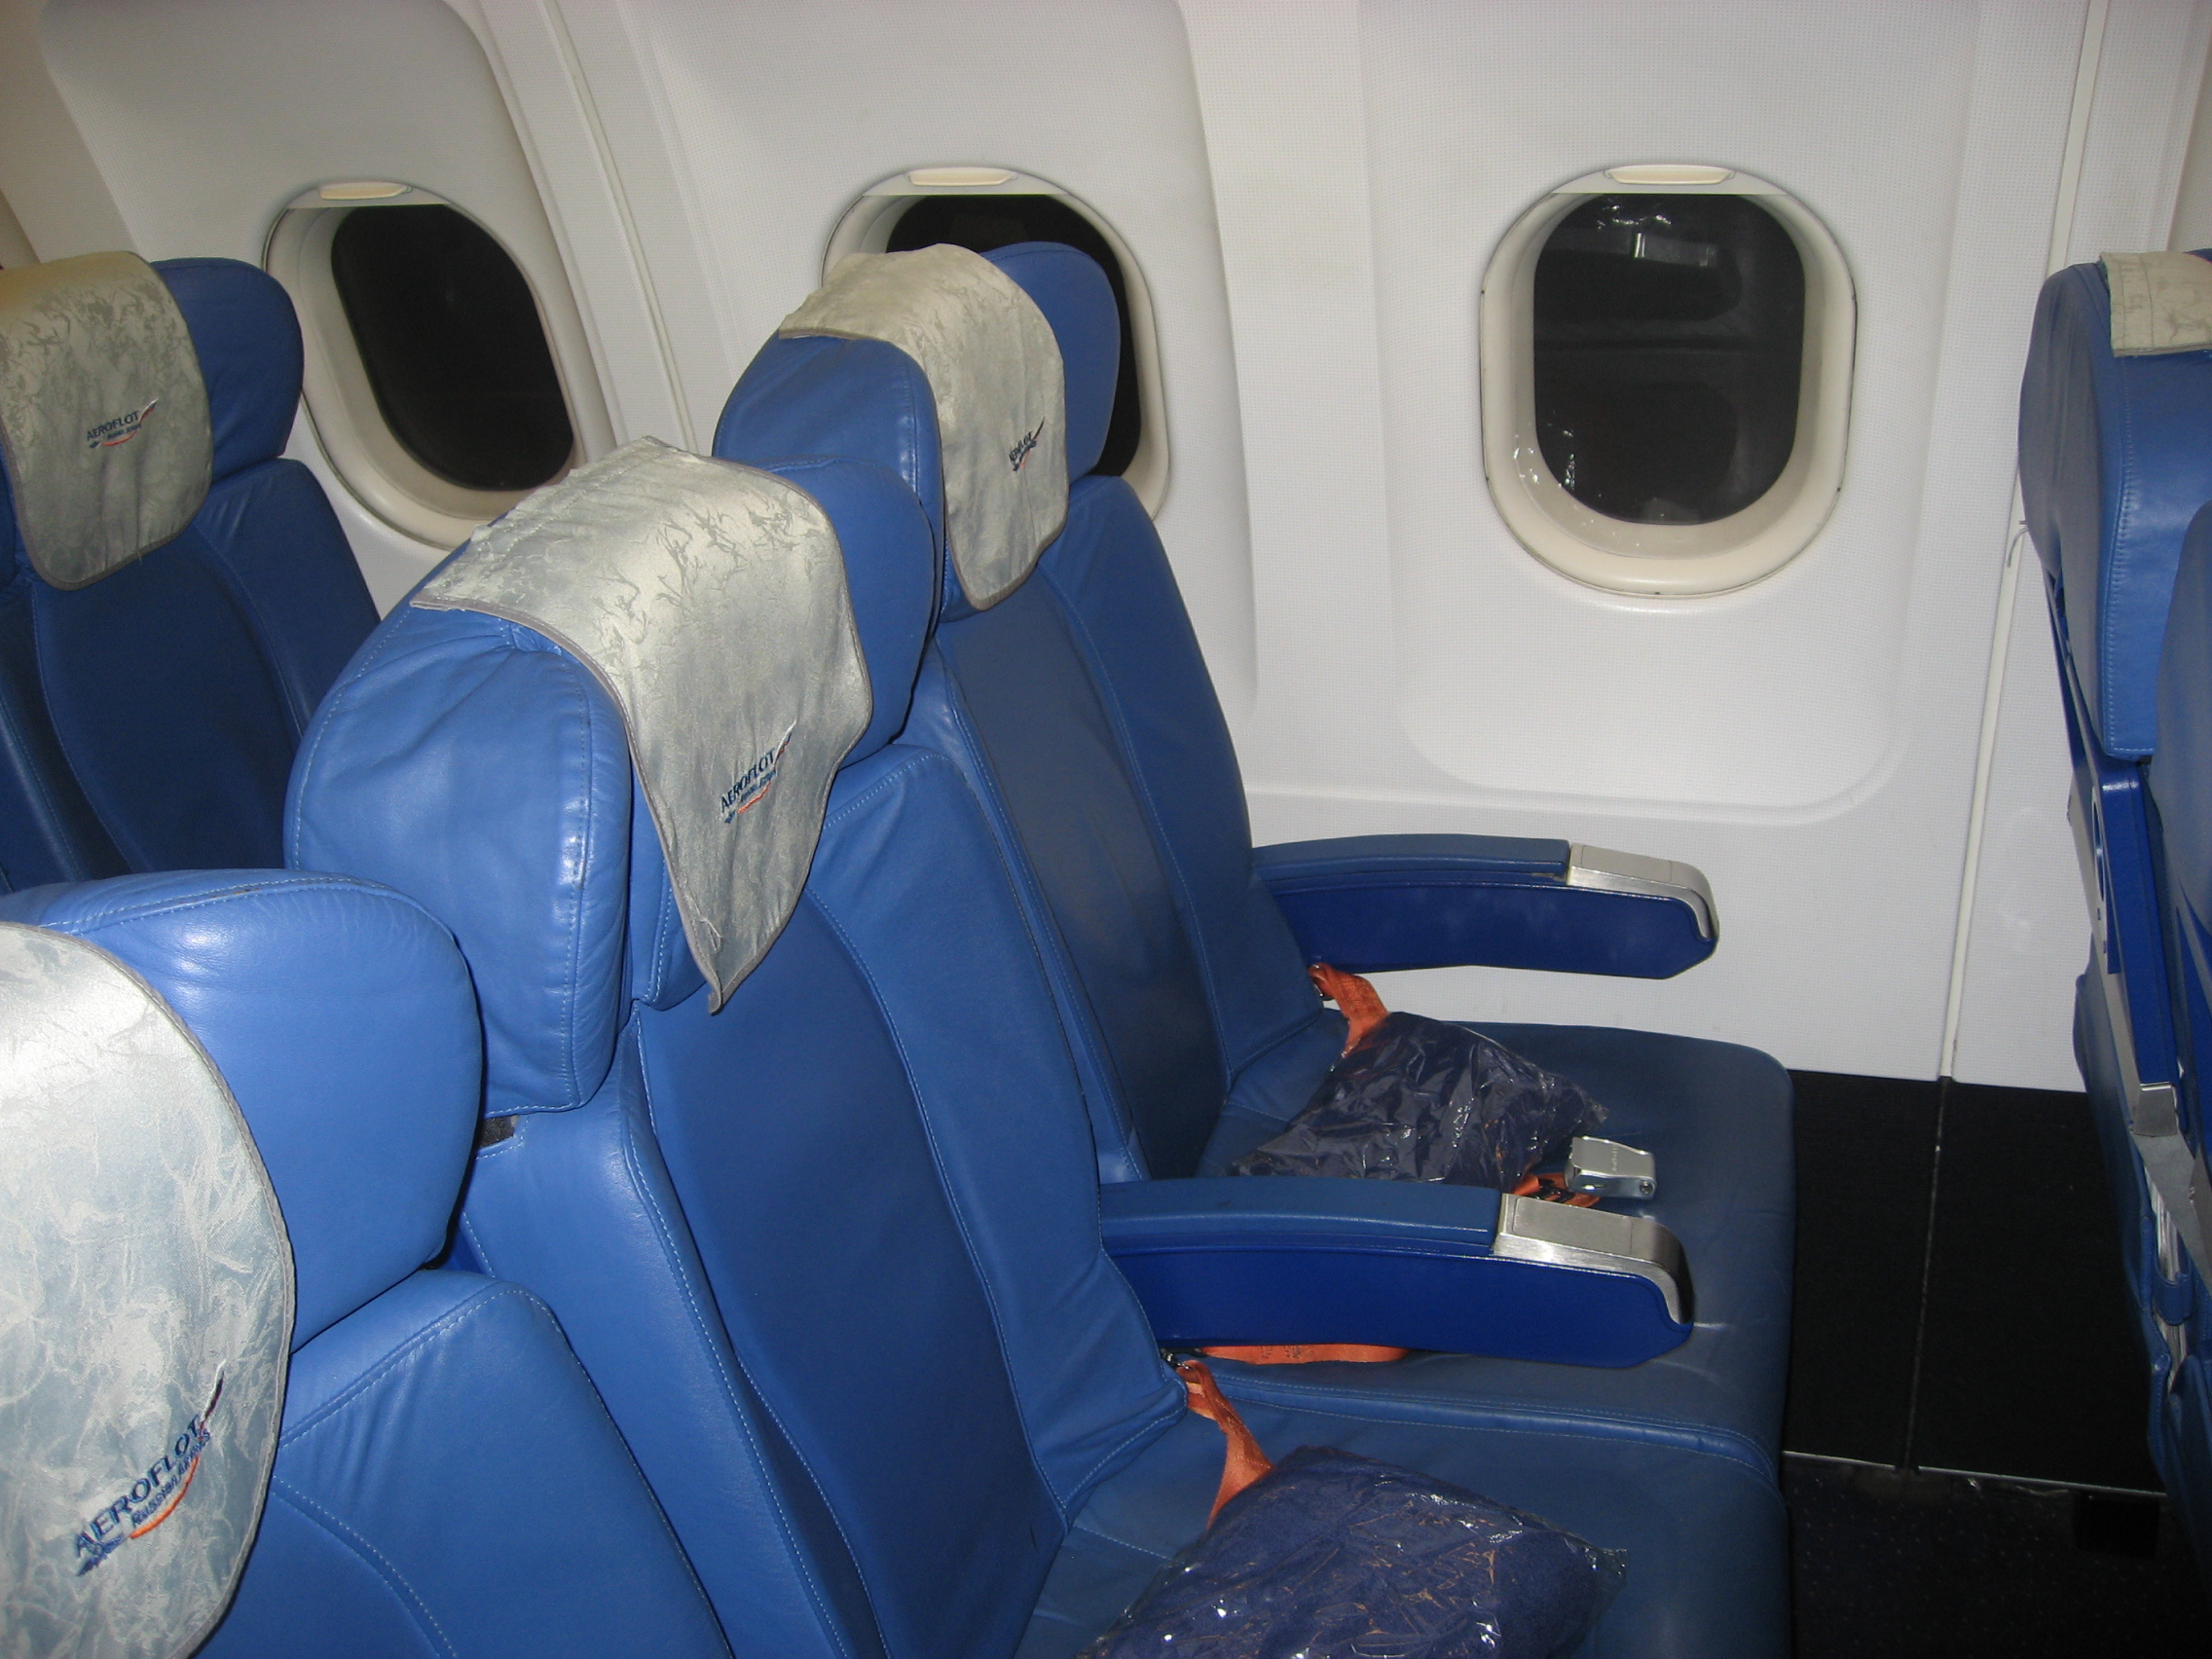 The passenger seats in the Airbus A319 Aeroflot